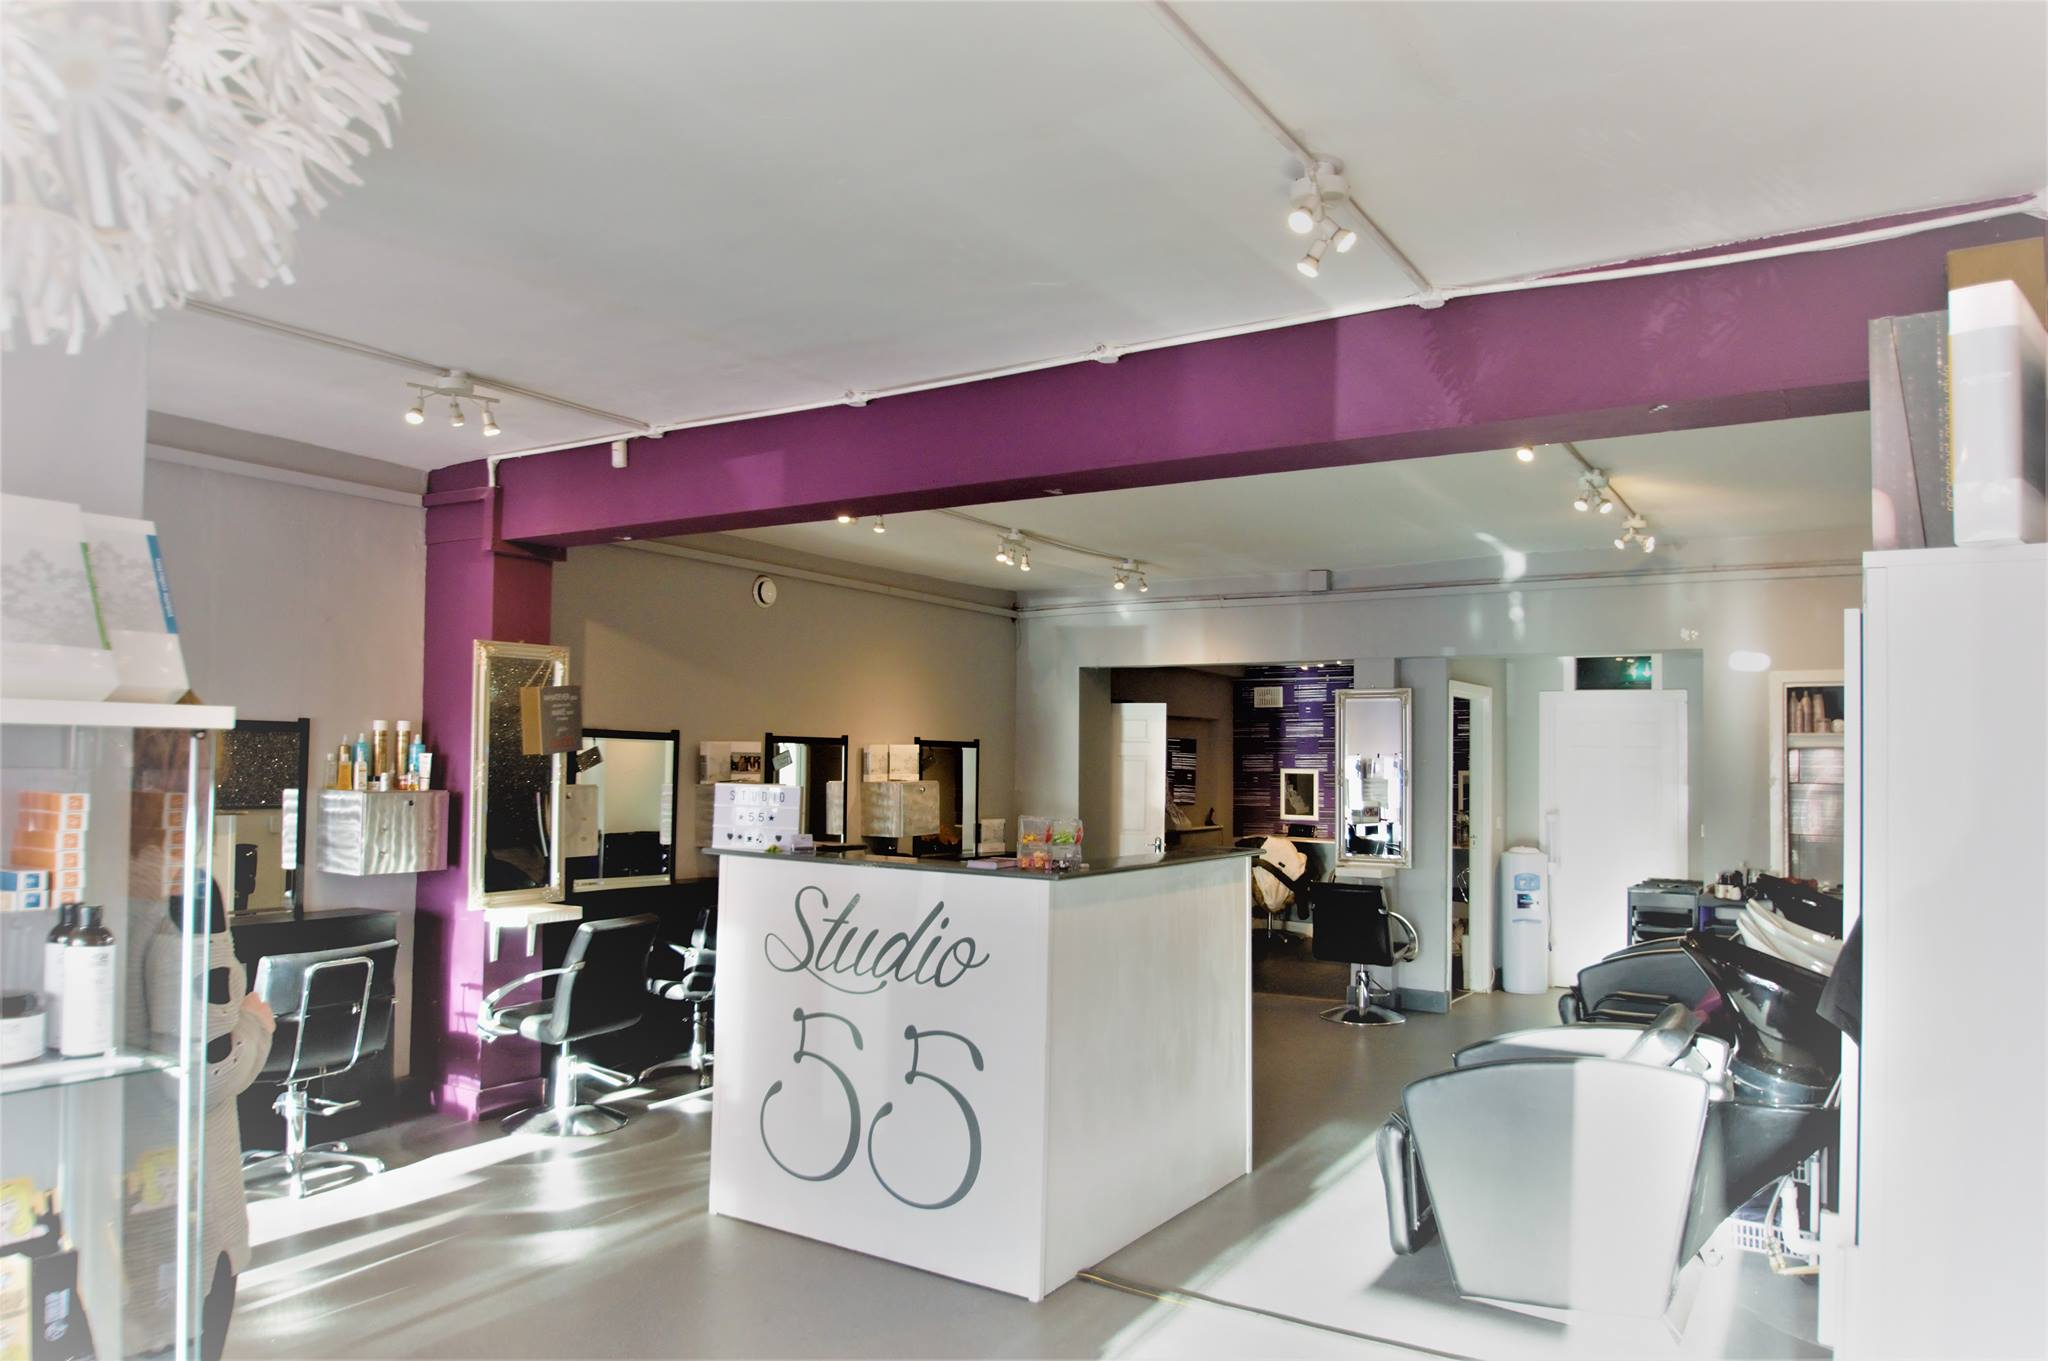 To Celebrate their 5 Star Award from the Good Salon Guide - Studio 55 Hair Salon All Saints Park Shopping Centre, are holding an appreciation evening on Saturday 5th May from 4 - 7pm. Consultations, treatment demos, raffles and much more on the night.